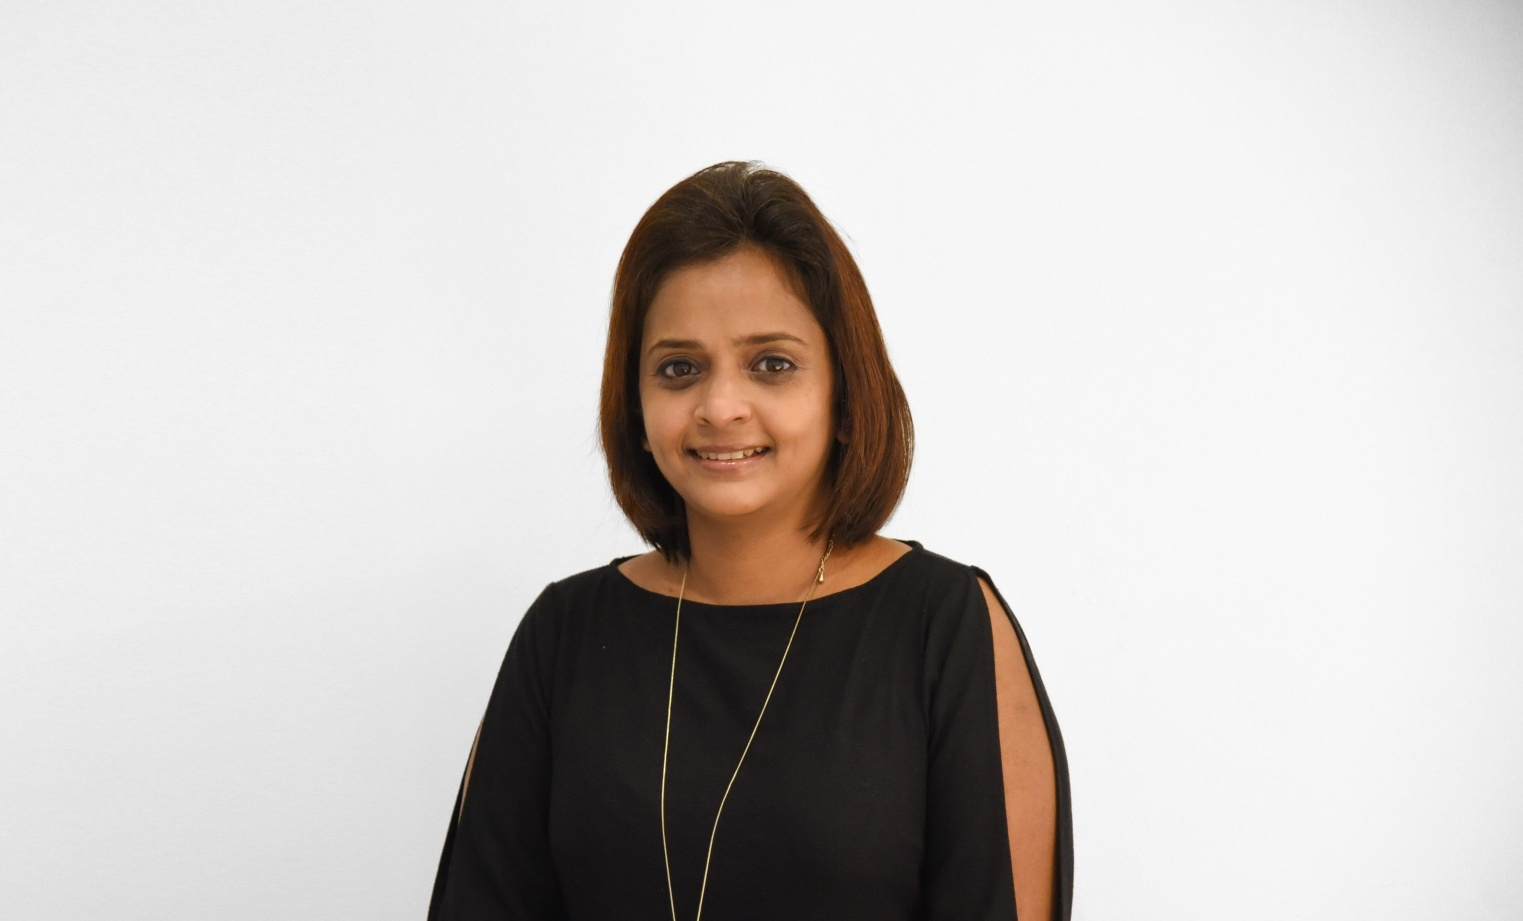 The Power of MarCom – Anne-Marie Dias, Head of Marketing and Communications for One Galle Face